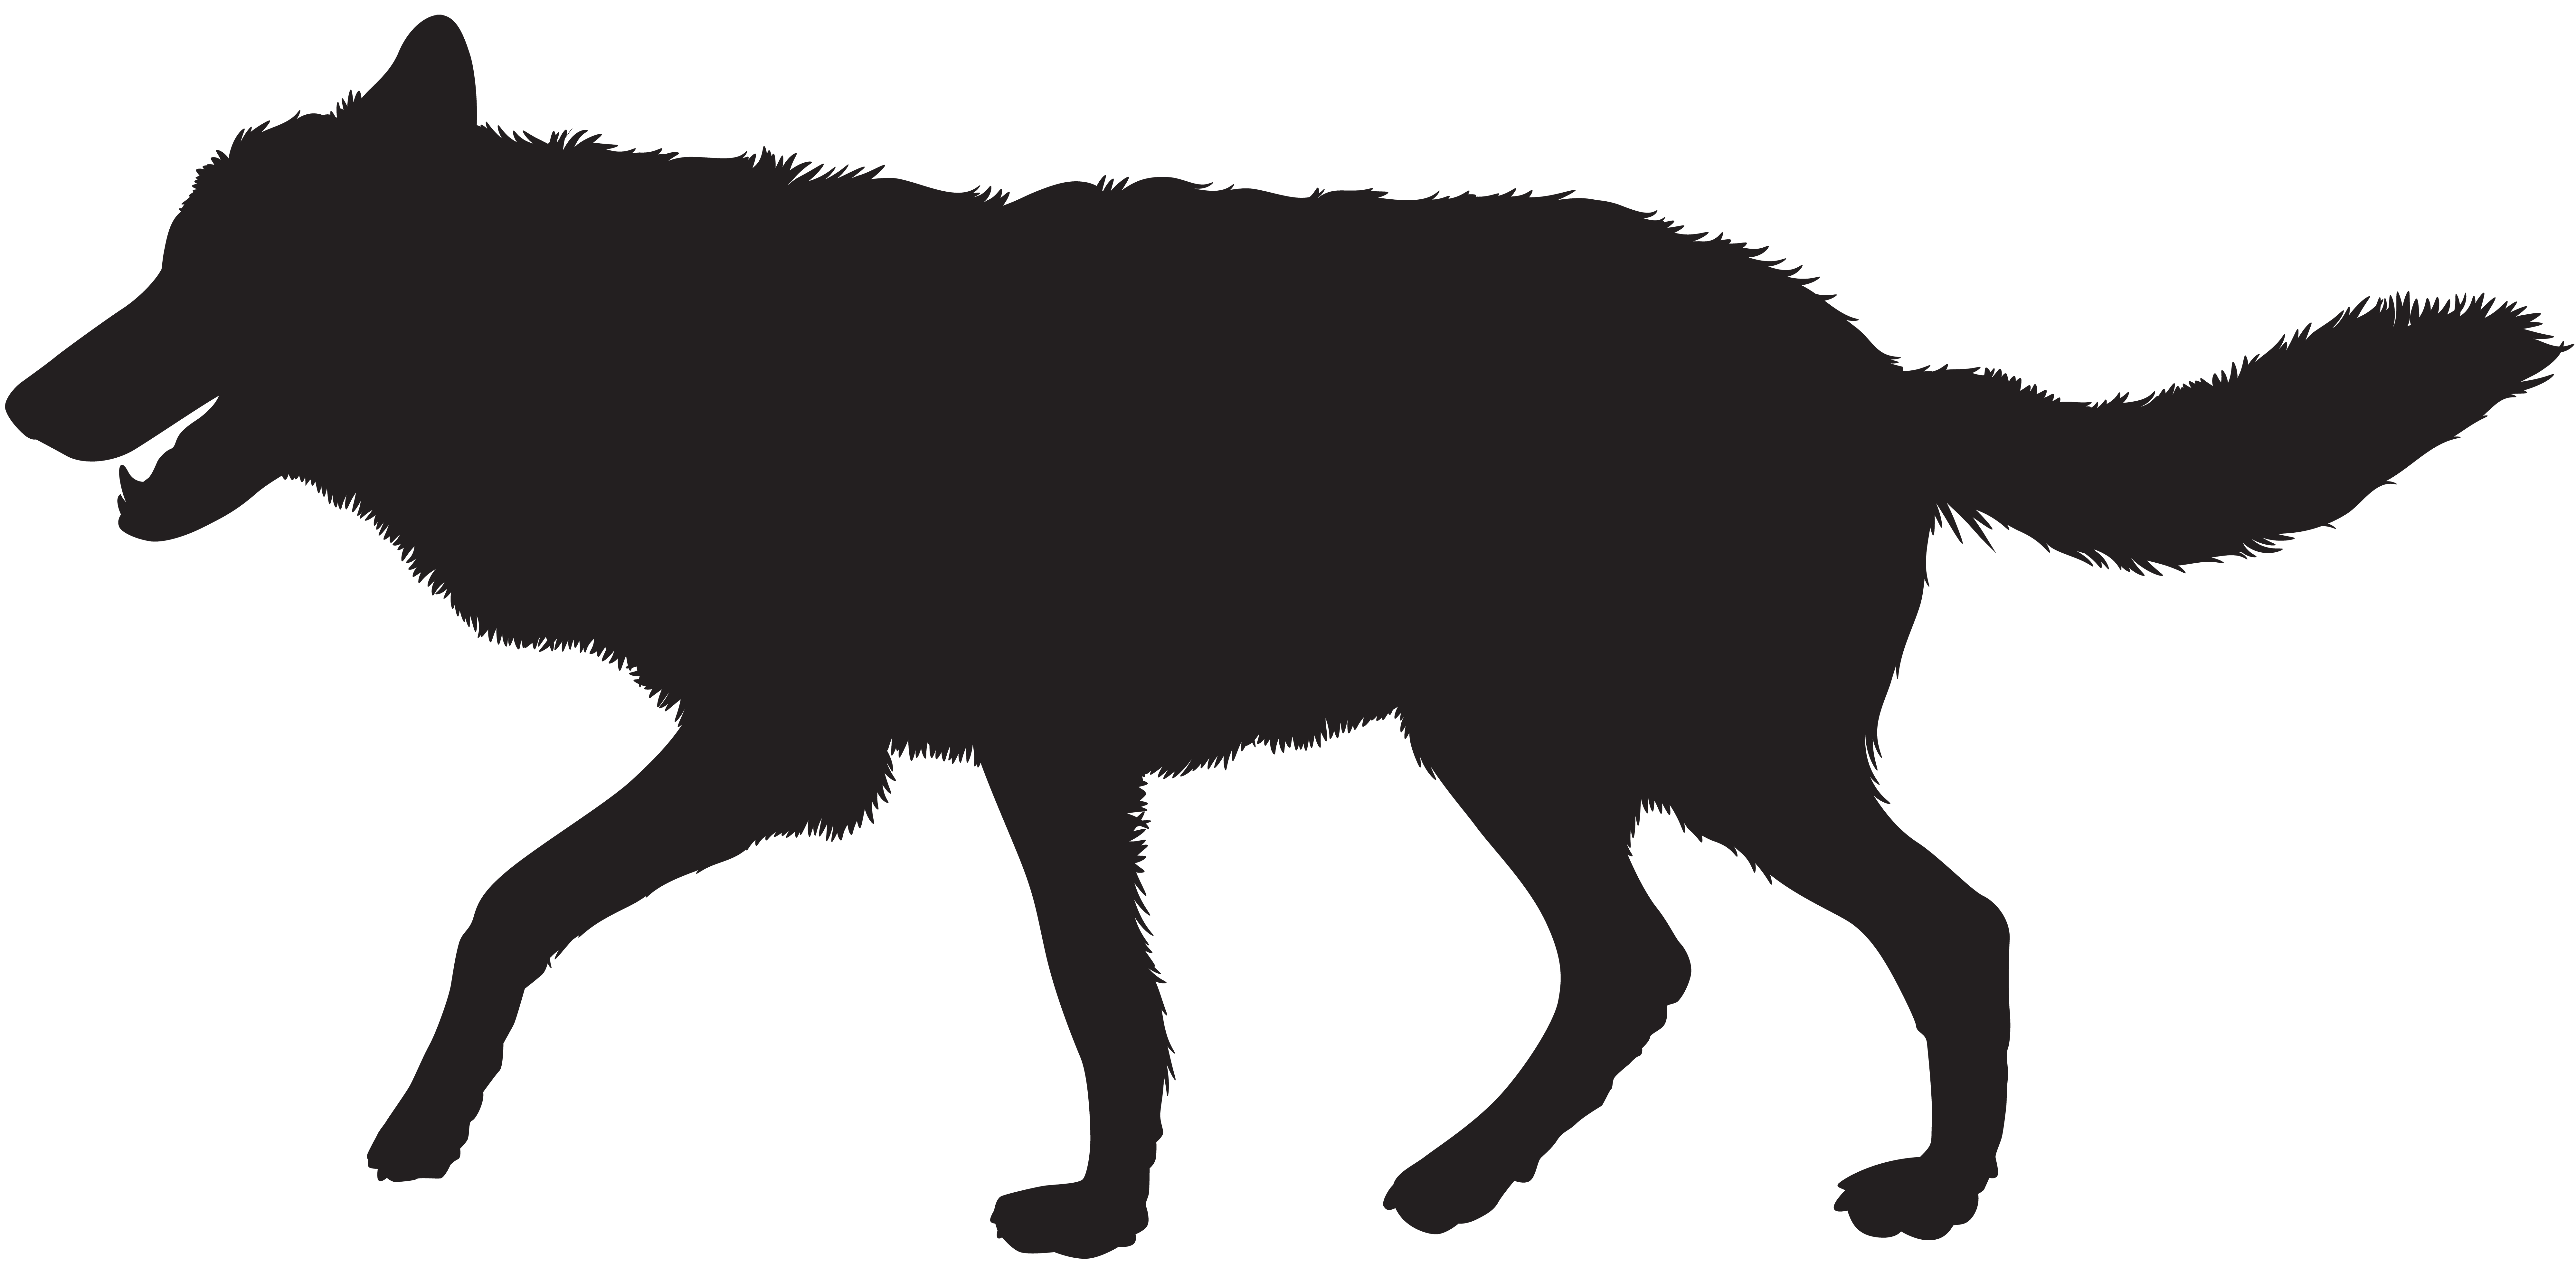 Wolf silhouette clipart jpg library stock Gray wolf Silhouette Clip art - Wolf Silhouette PNG Clip Art ... jpg library stock